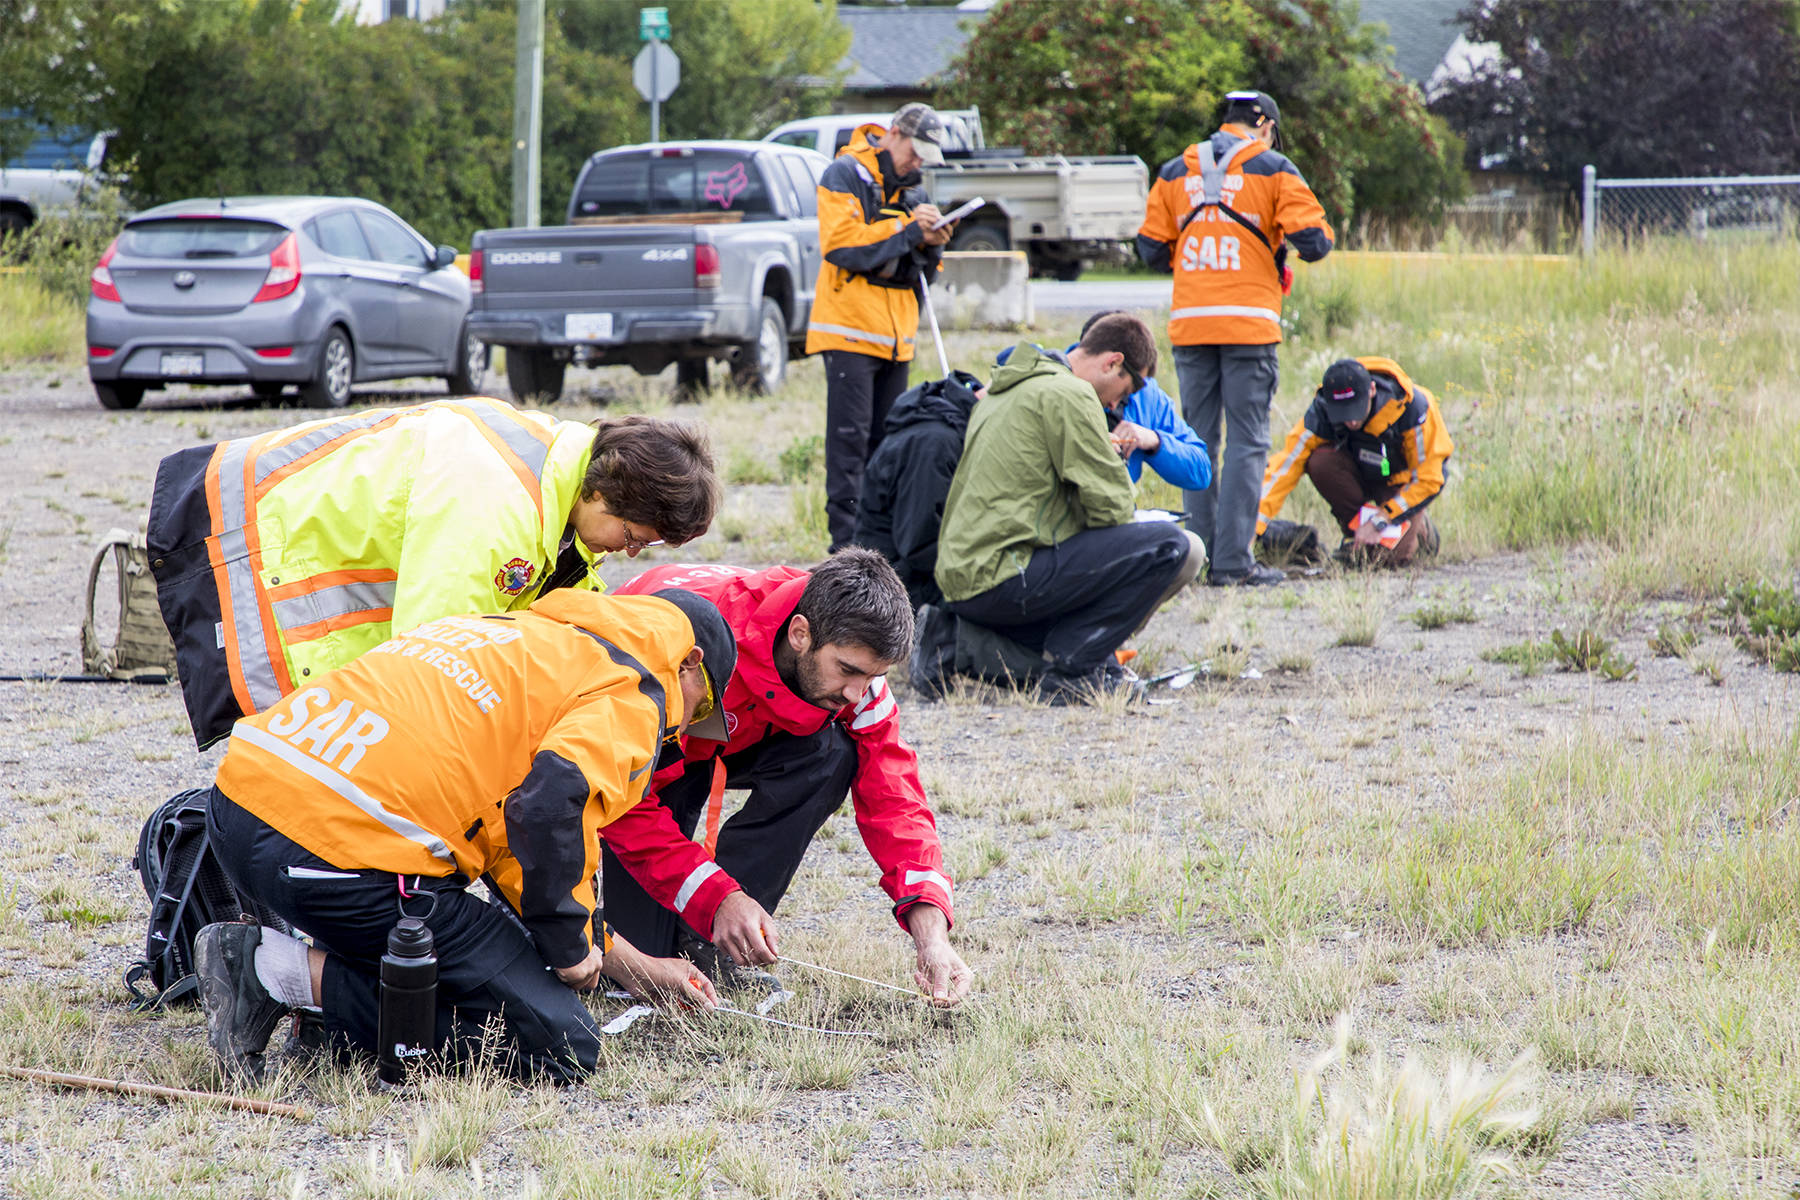 """Aug. 24, 2019 — Nechako Valley Search and Rescue hosted a B.C. tracking association course over the weekend. Members are shown analysing a foot print as part of the introductory course called Track Aware which was guided by Chris Mushumanski. SAR members who already have some track aware courses, were taking the Tracker course which is more advanced. There were trained by Jeni Christie, president of B.C. tracking association. """"In B.C. for search, tracking is a really important skill used on many searches, especially here in the north. Having skilled trackers is really essential in reducing the area you are going to search, finding that subject faster, getting a direction of travel from where they were last seen,"""" Mushumanski said. (Aman Parhar photo)"""